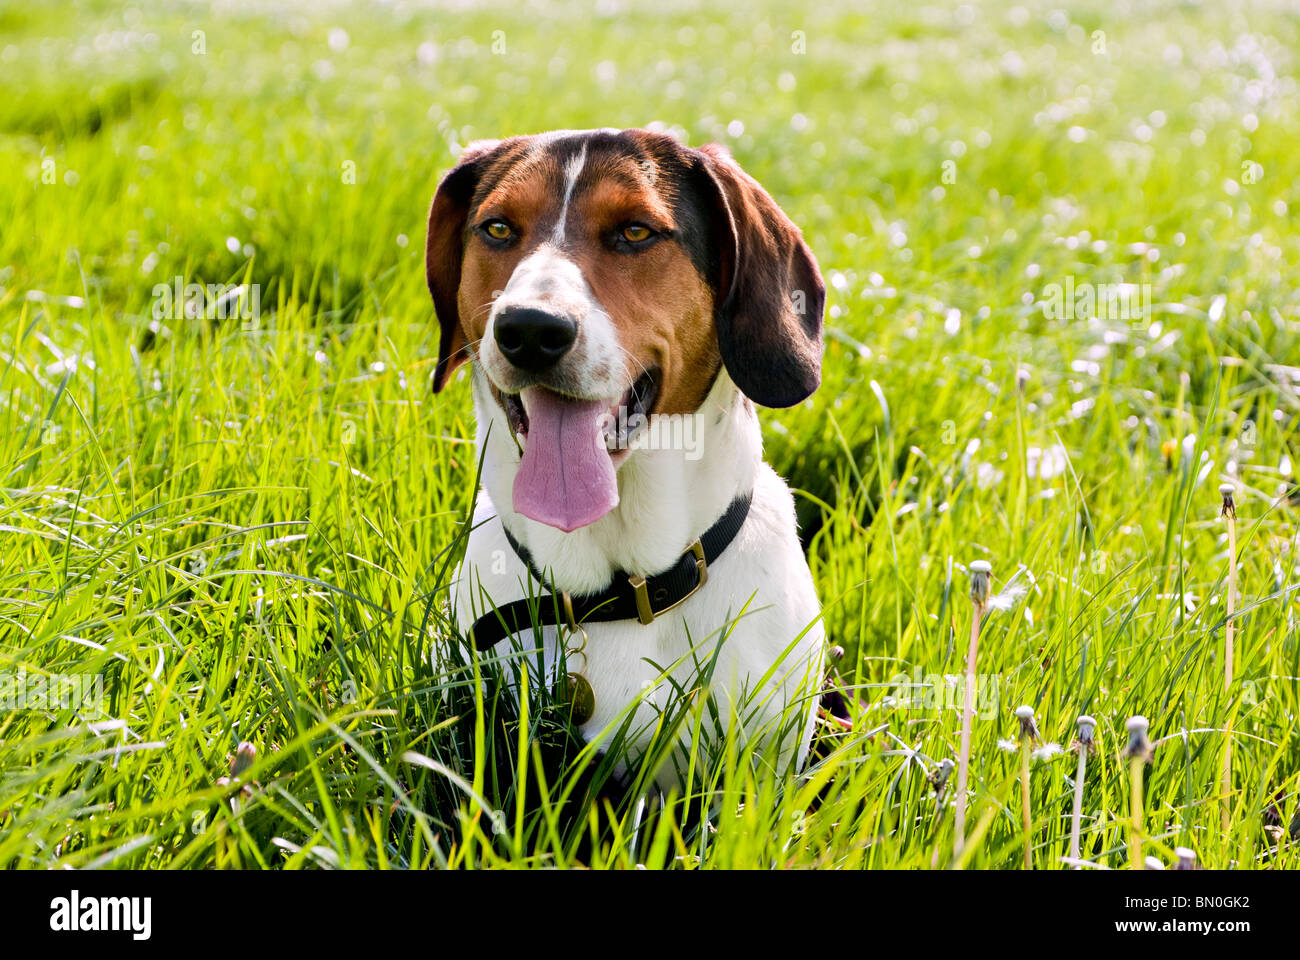 Basset Beagle crossbreed (Bagel), in a field - Stock Image